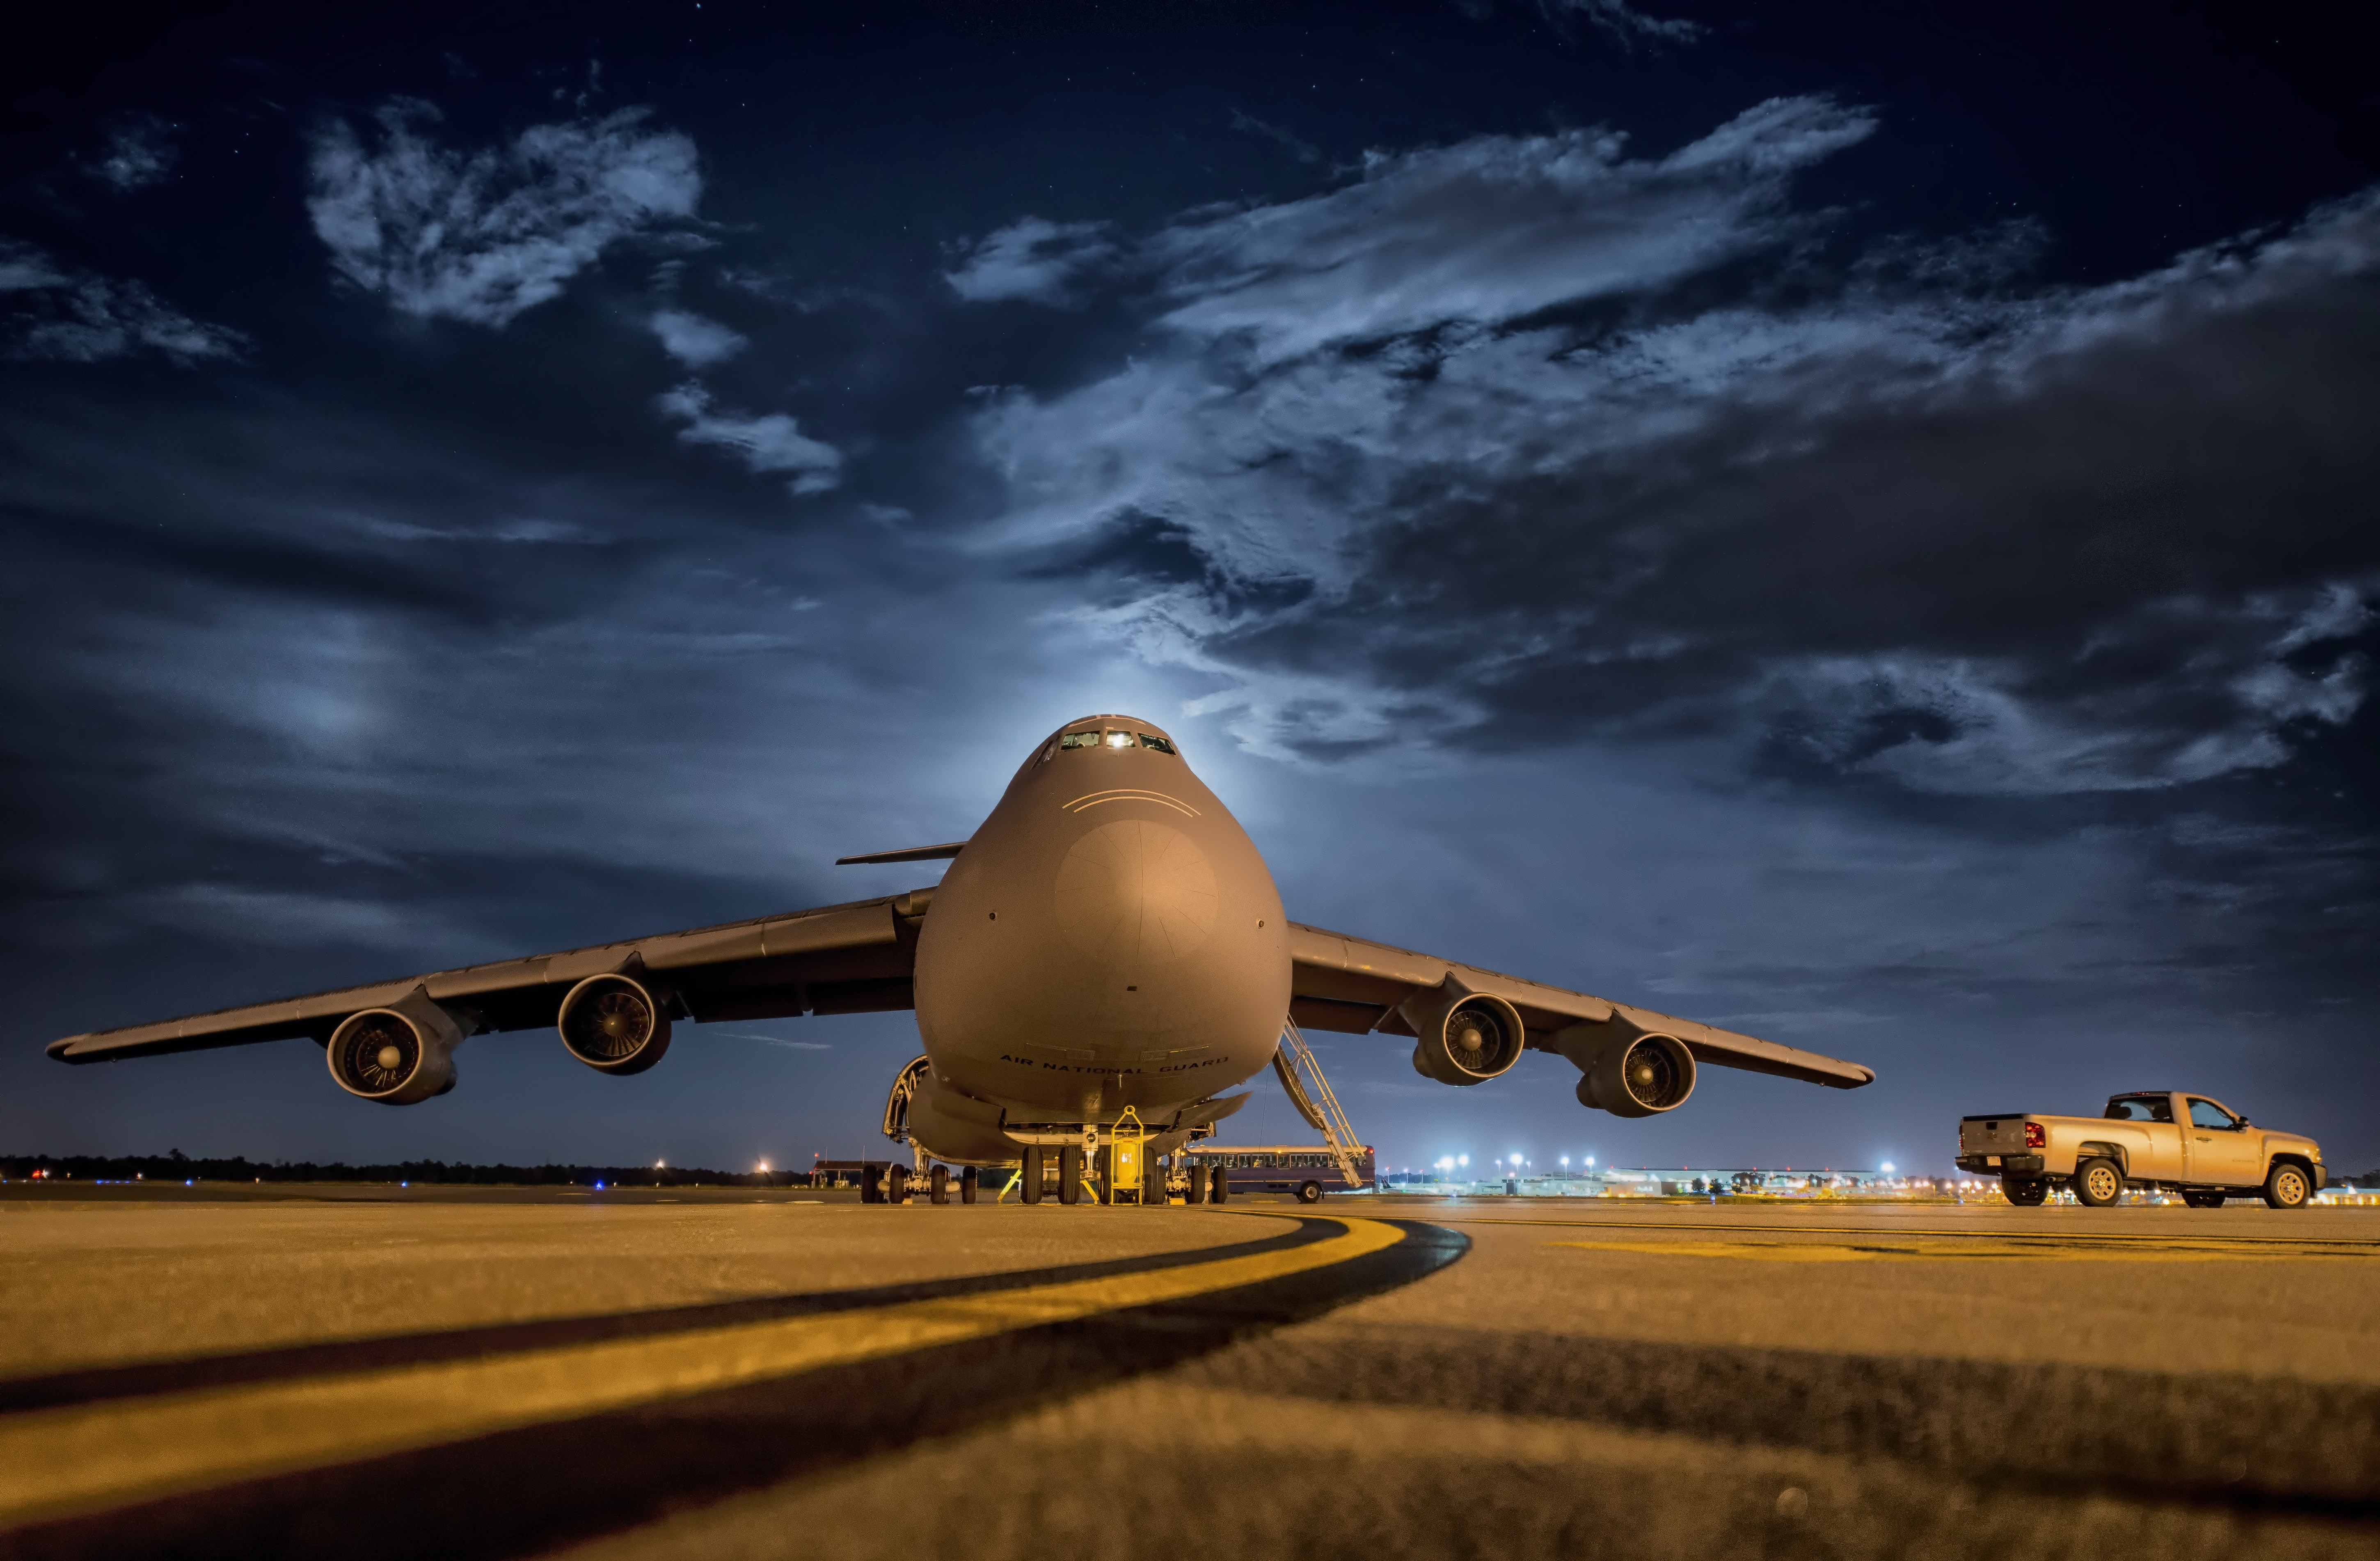 Airplane in front and night sky photo